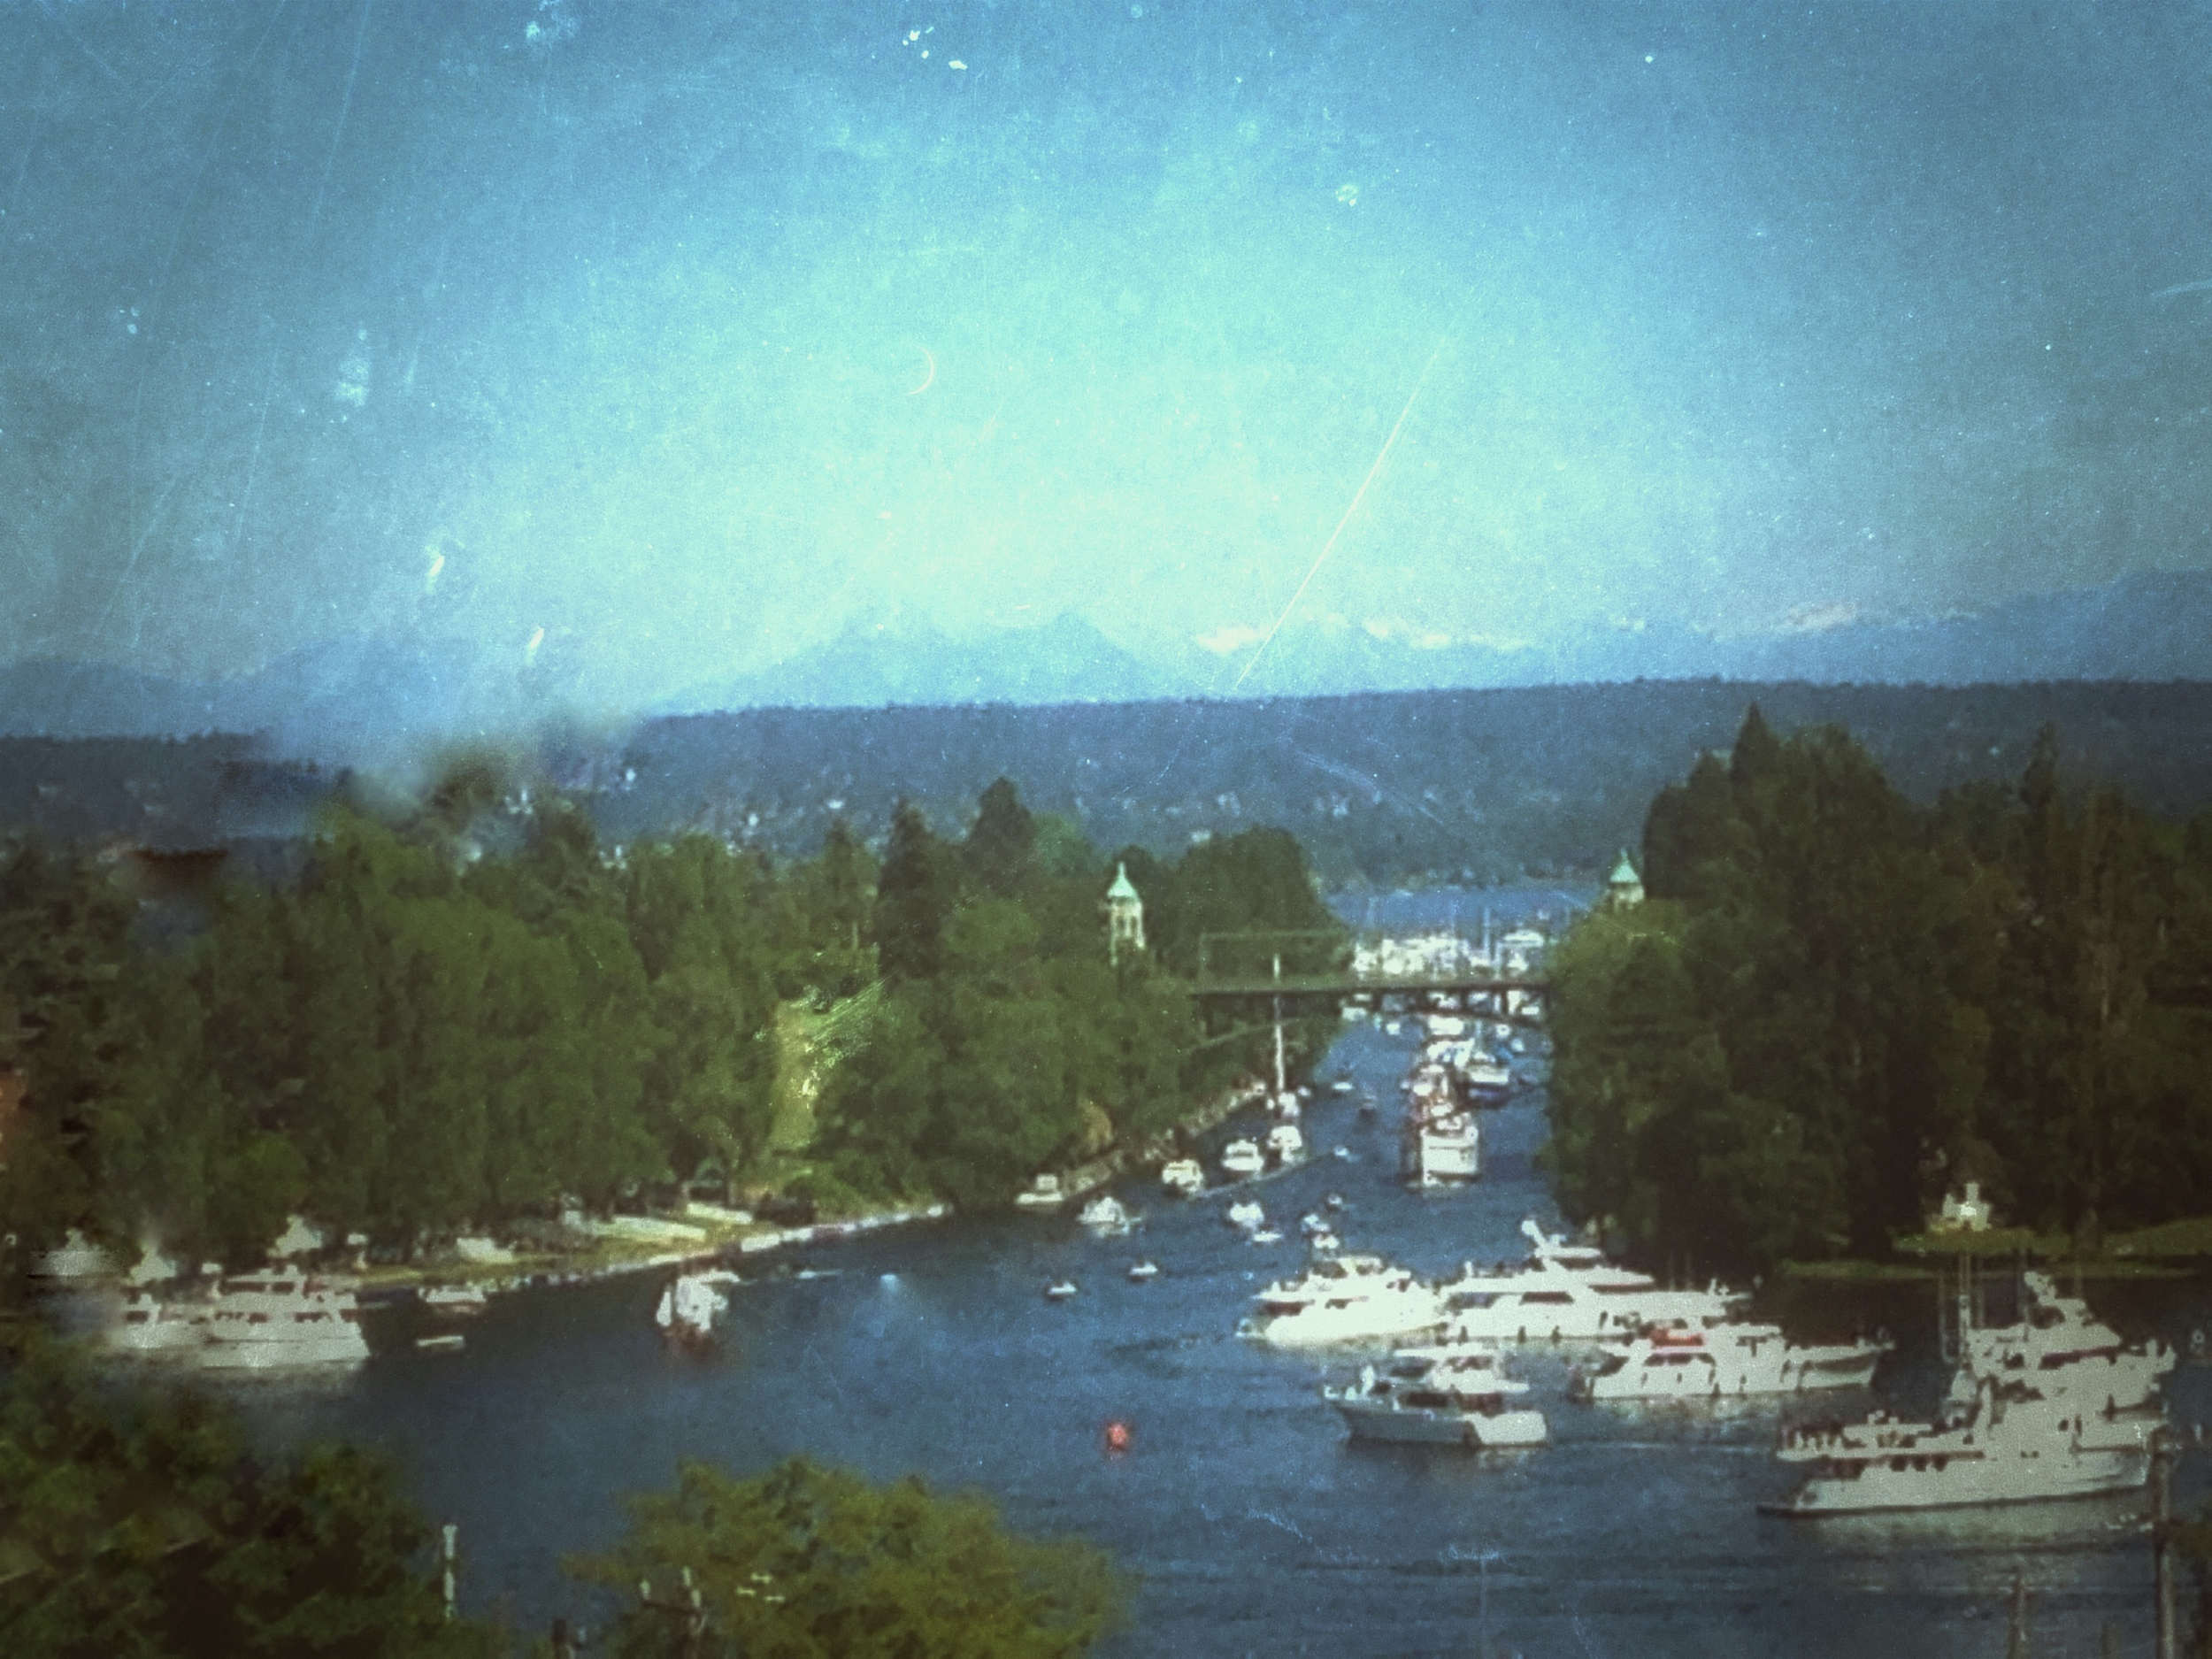 Opening Day, May 7, 2016. Portage Bay (foreground), leading into the Montlake Cut, connecting to Lake Washington.Cascade Mountains in the distance. The Seattle Yacht Club (not seen here) is to the right.